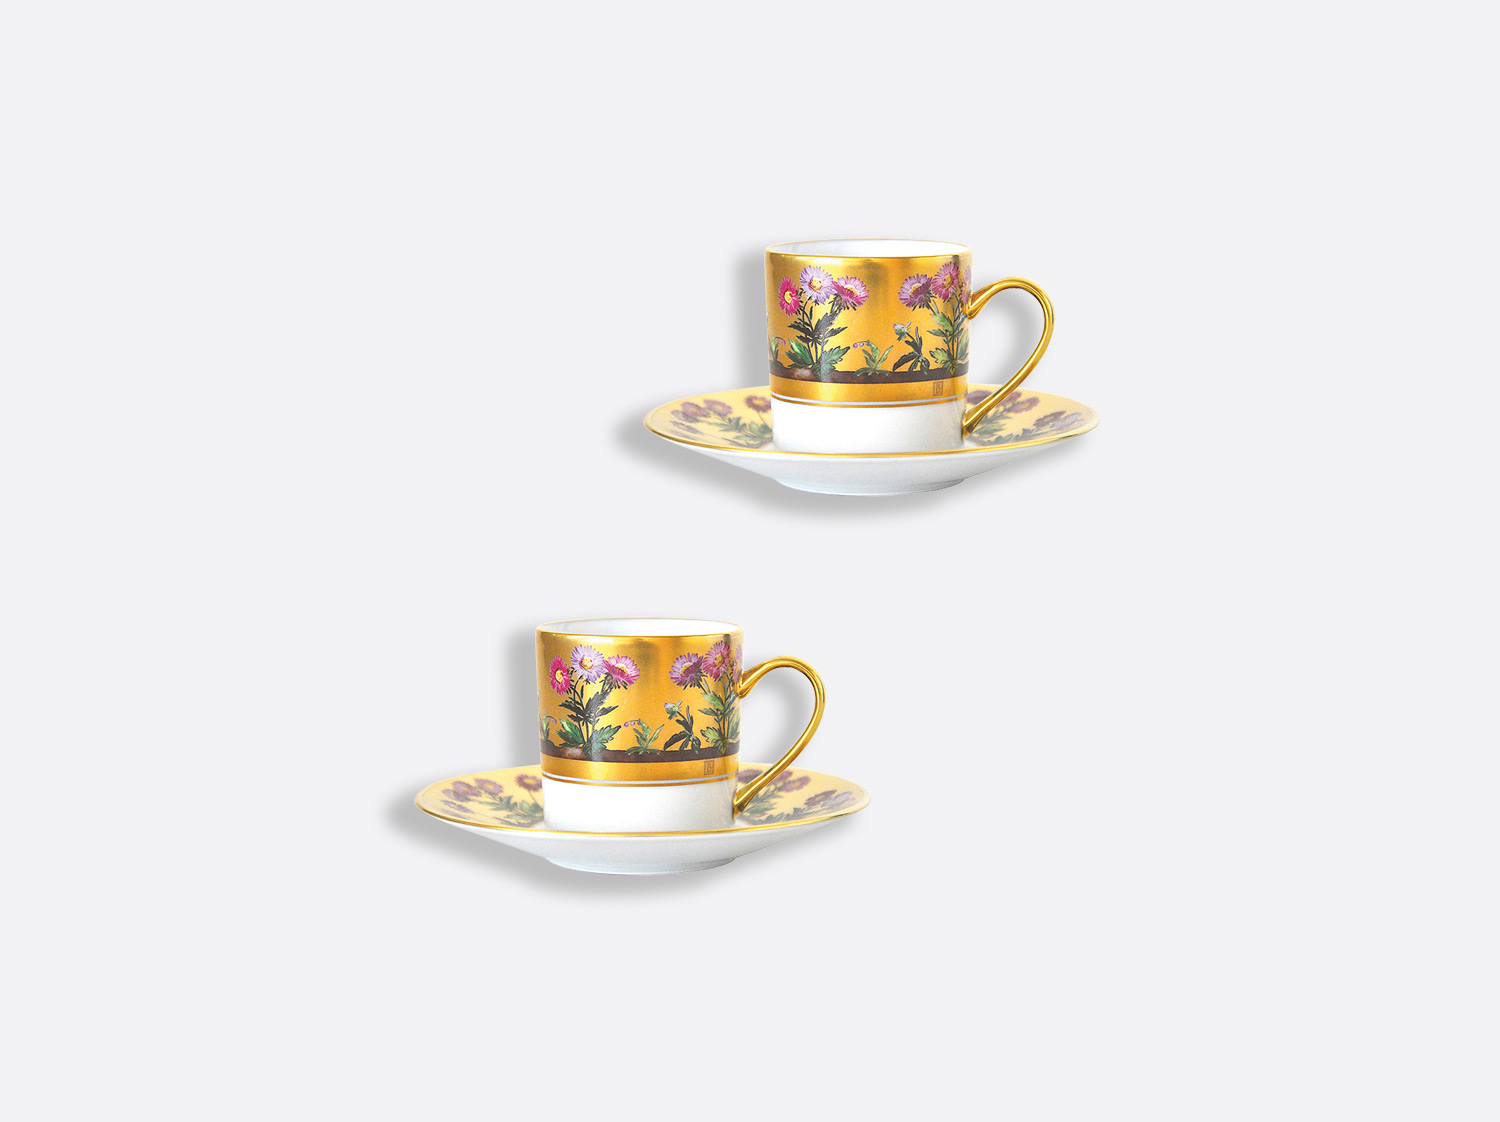 China Coffee cup and saucer gift box - 8 cl - Set of 2 of the collection Heloise | Bernardaud